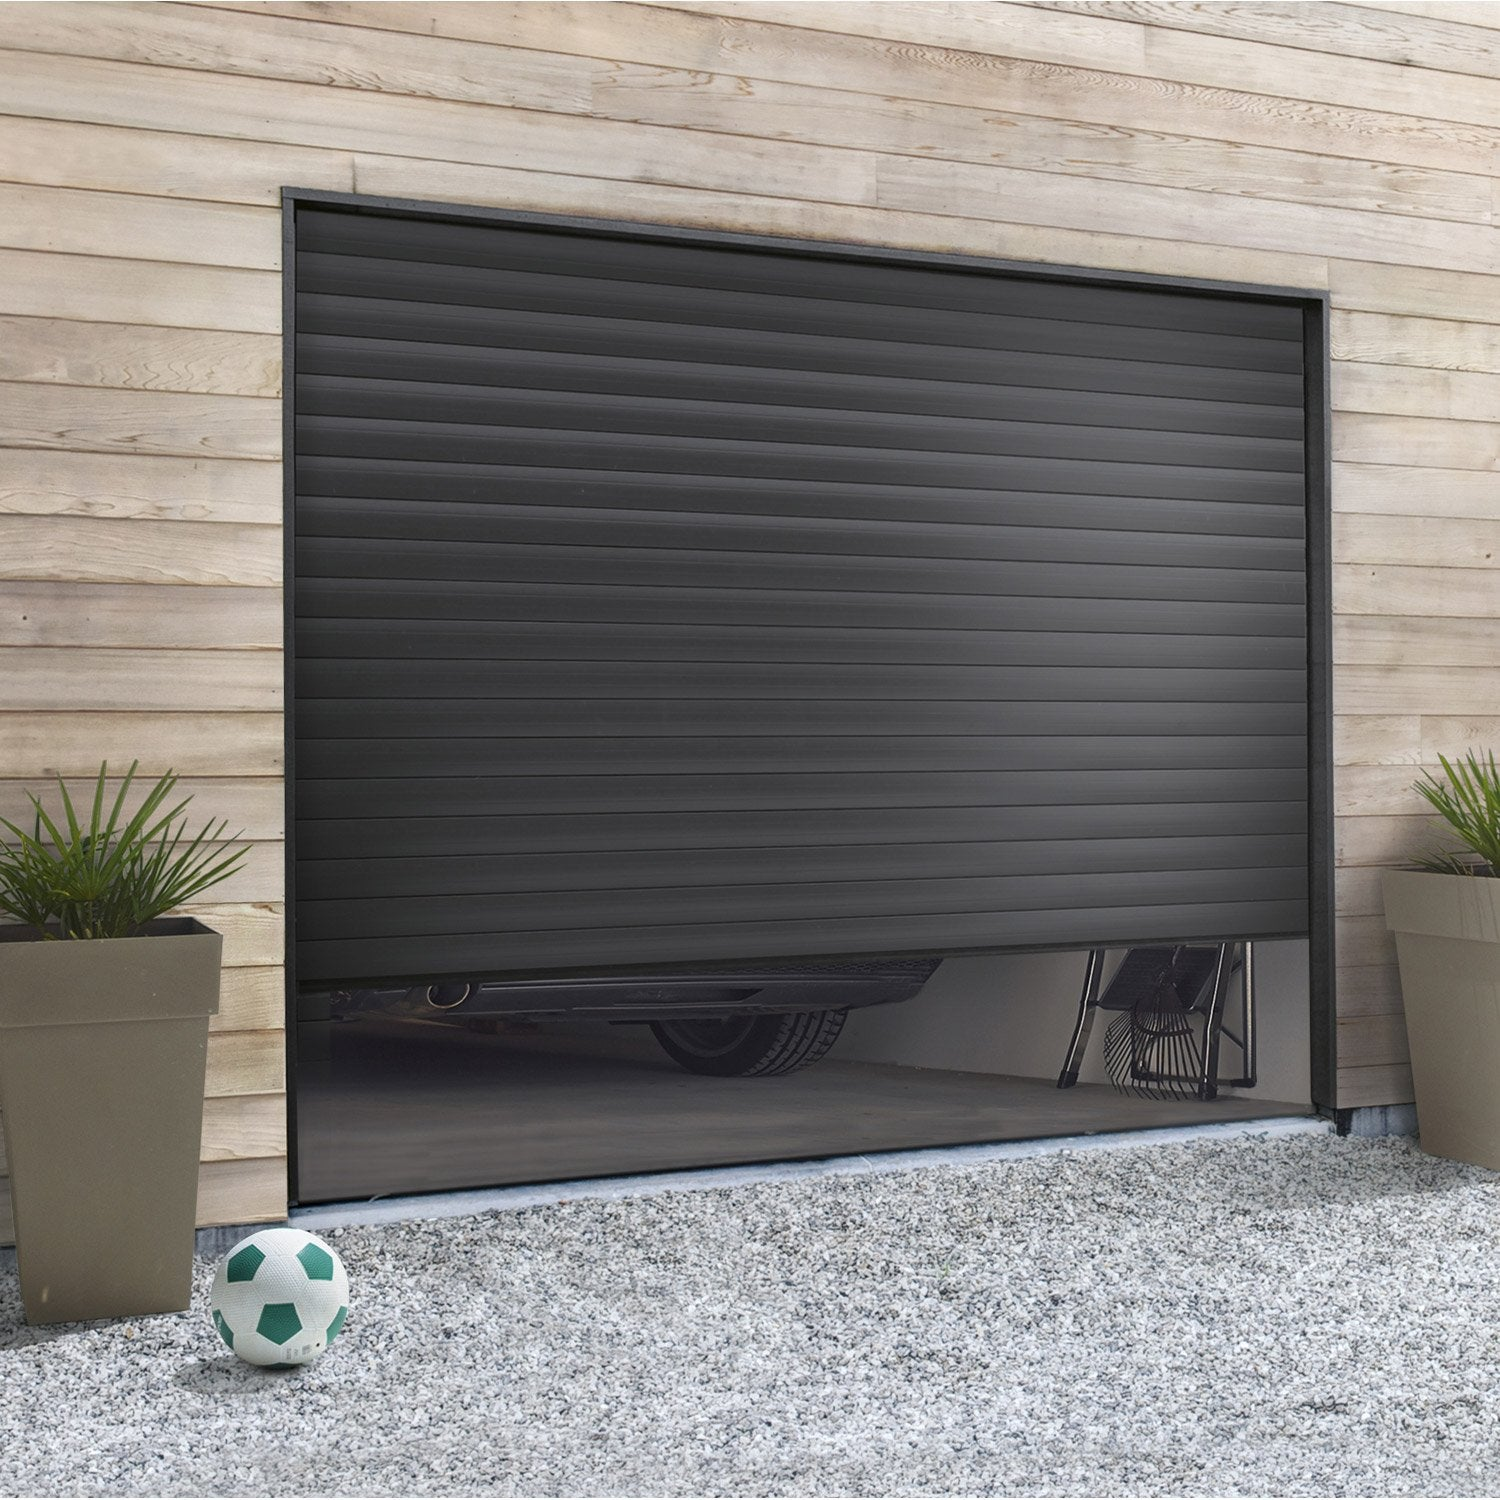 Pose d 39 une porte de garage enroulable leroy merlin - Porte enroulable garage ...